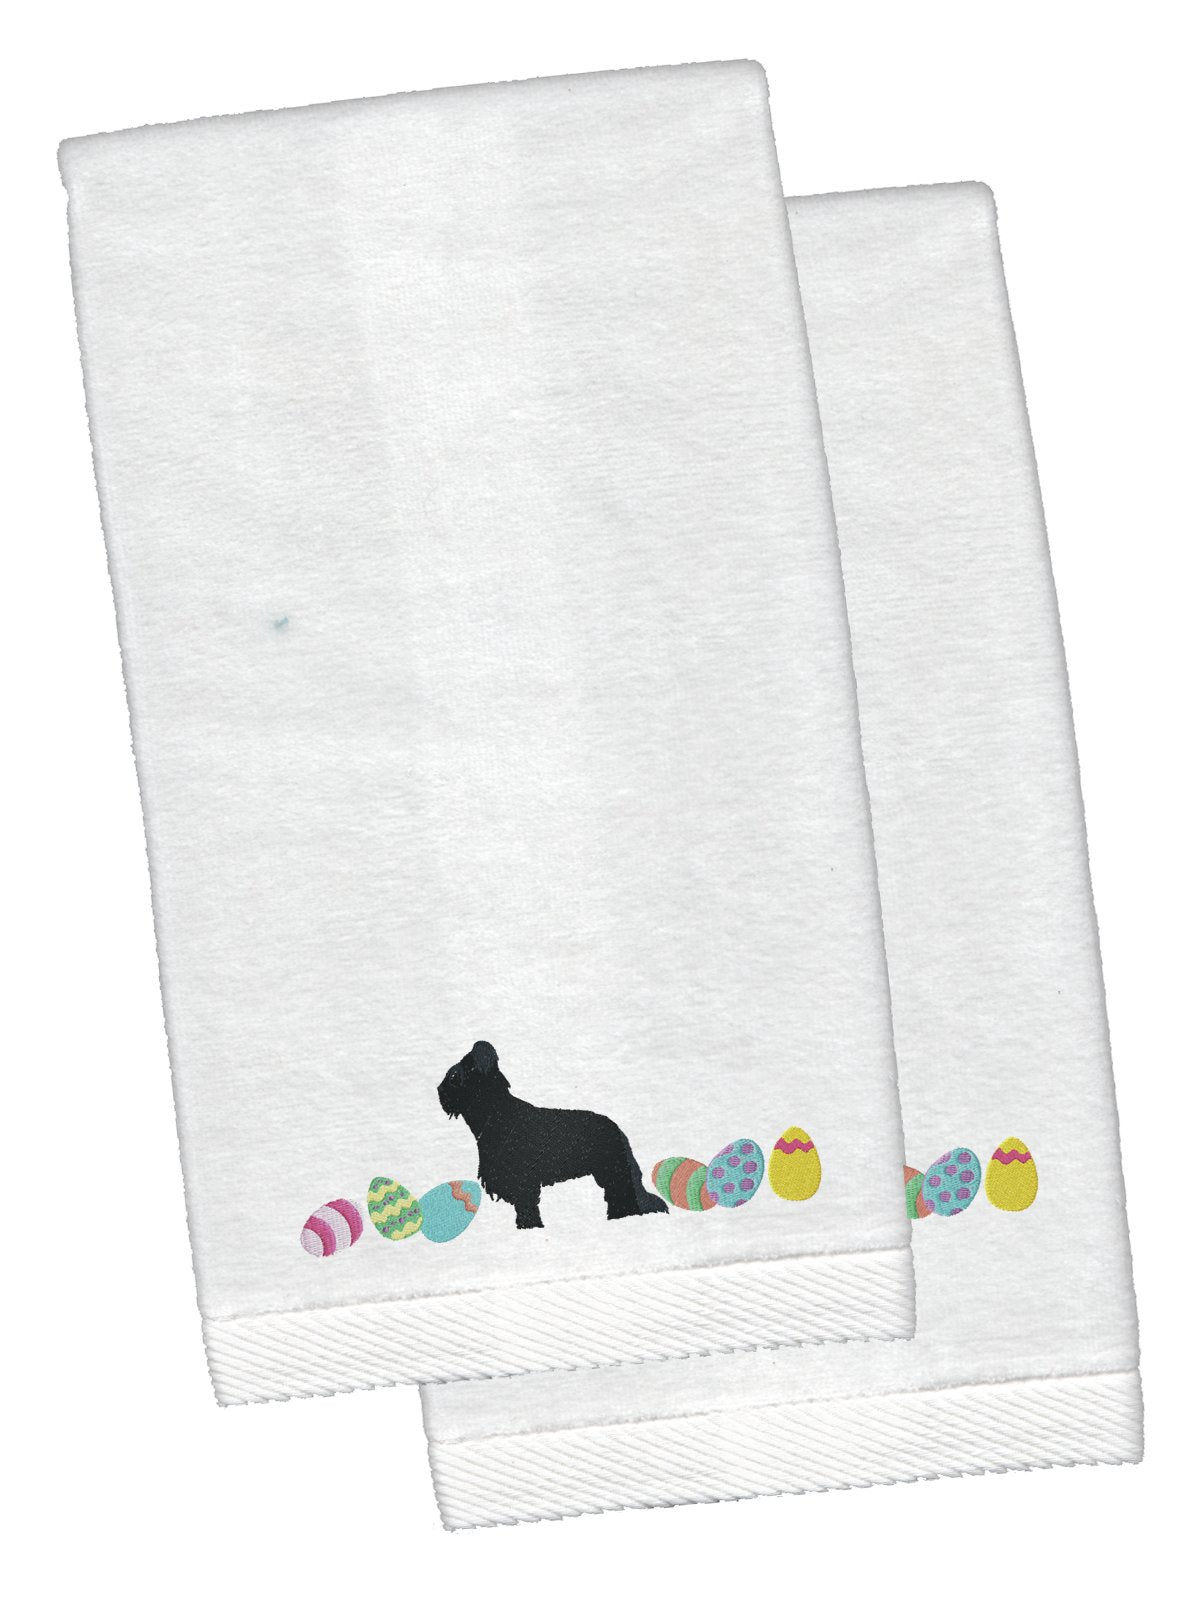 Briard Easter White Embroidered Plush Hand Towel Set of 2 CK1616KTEMB by Caroline's Treasures